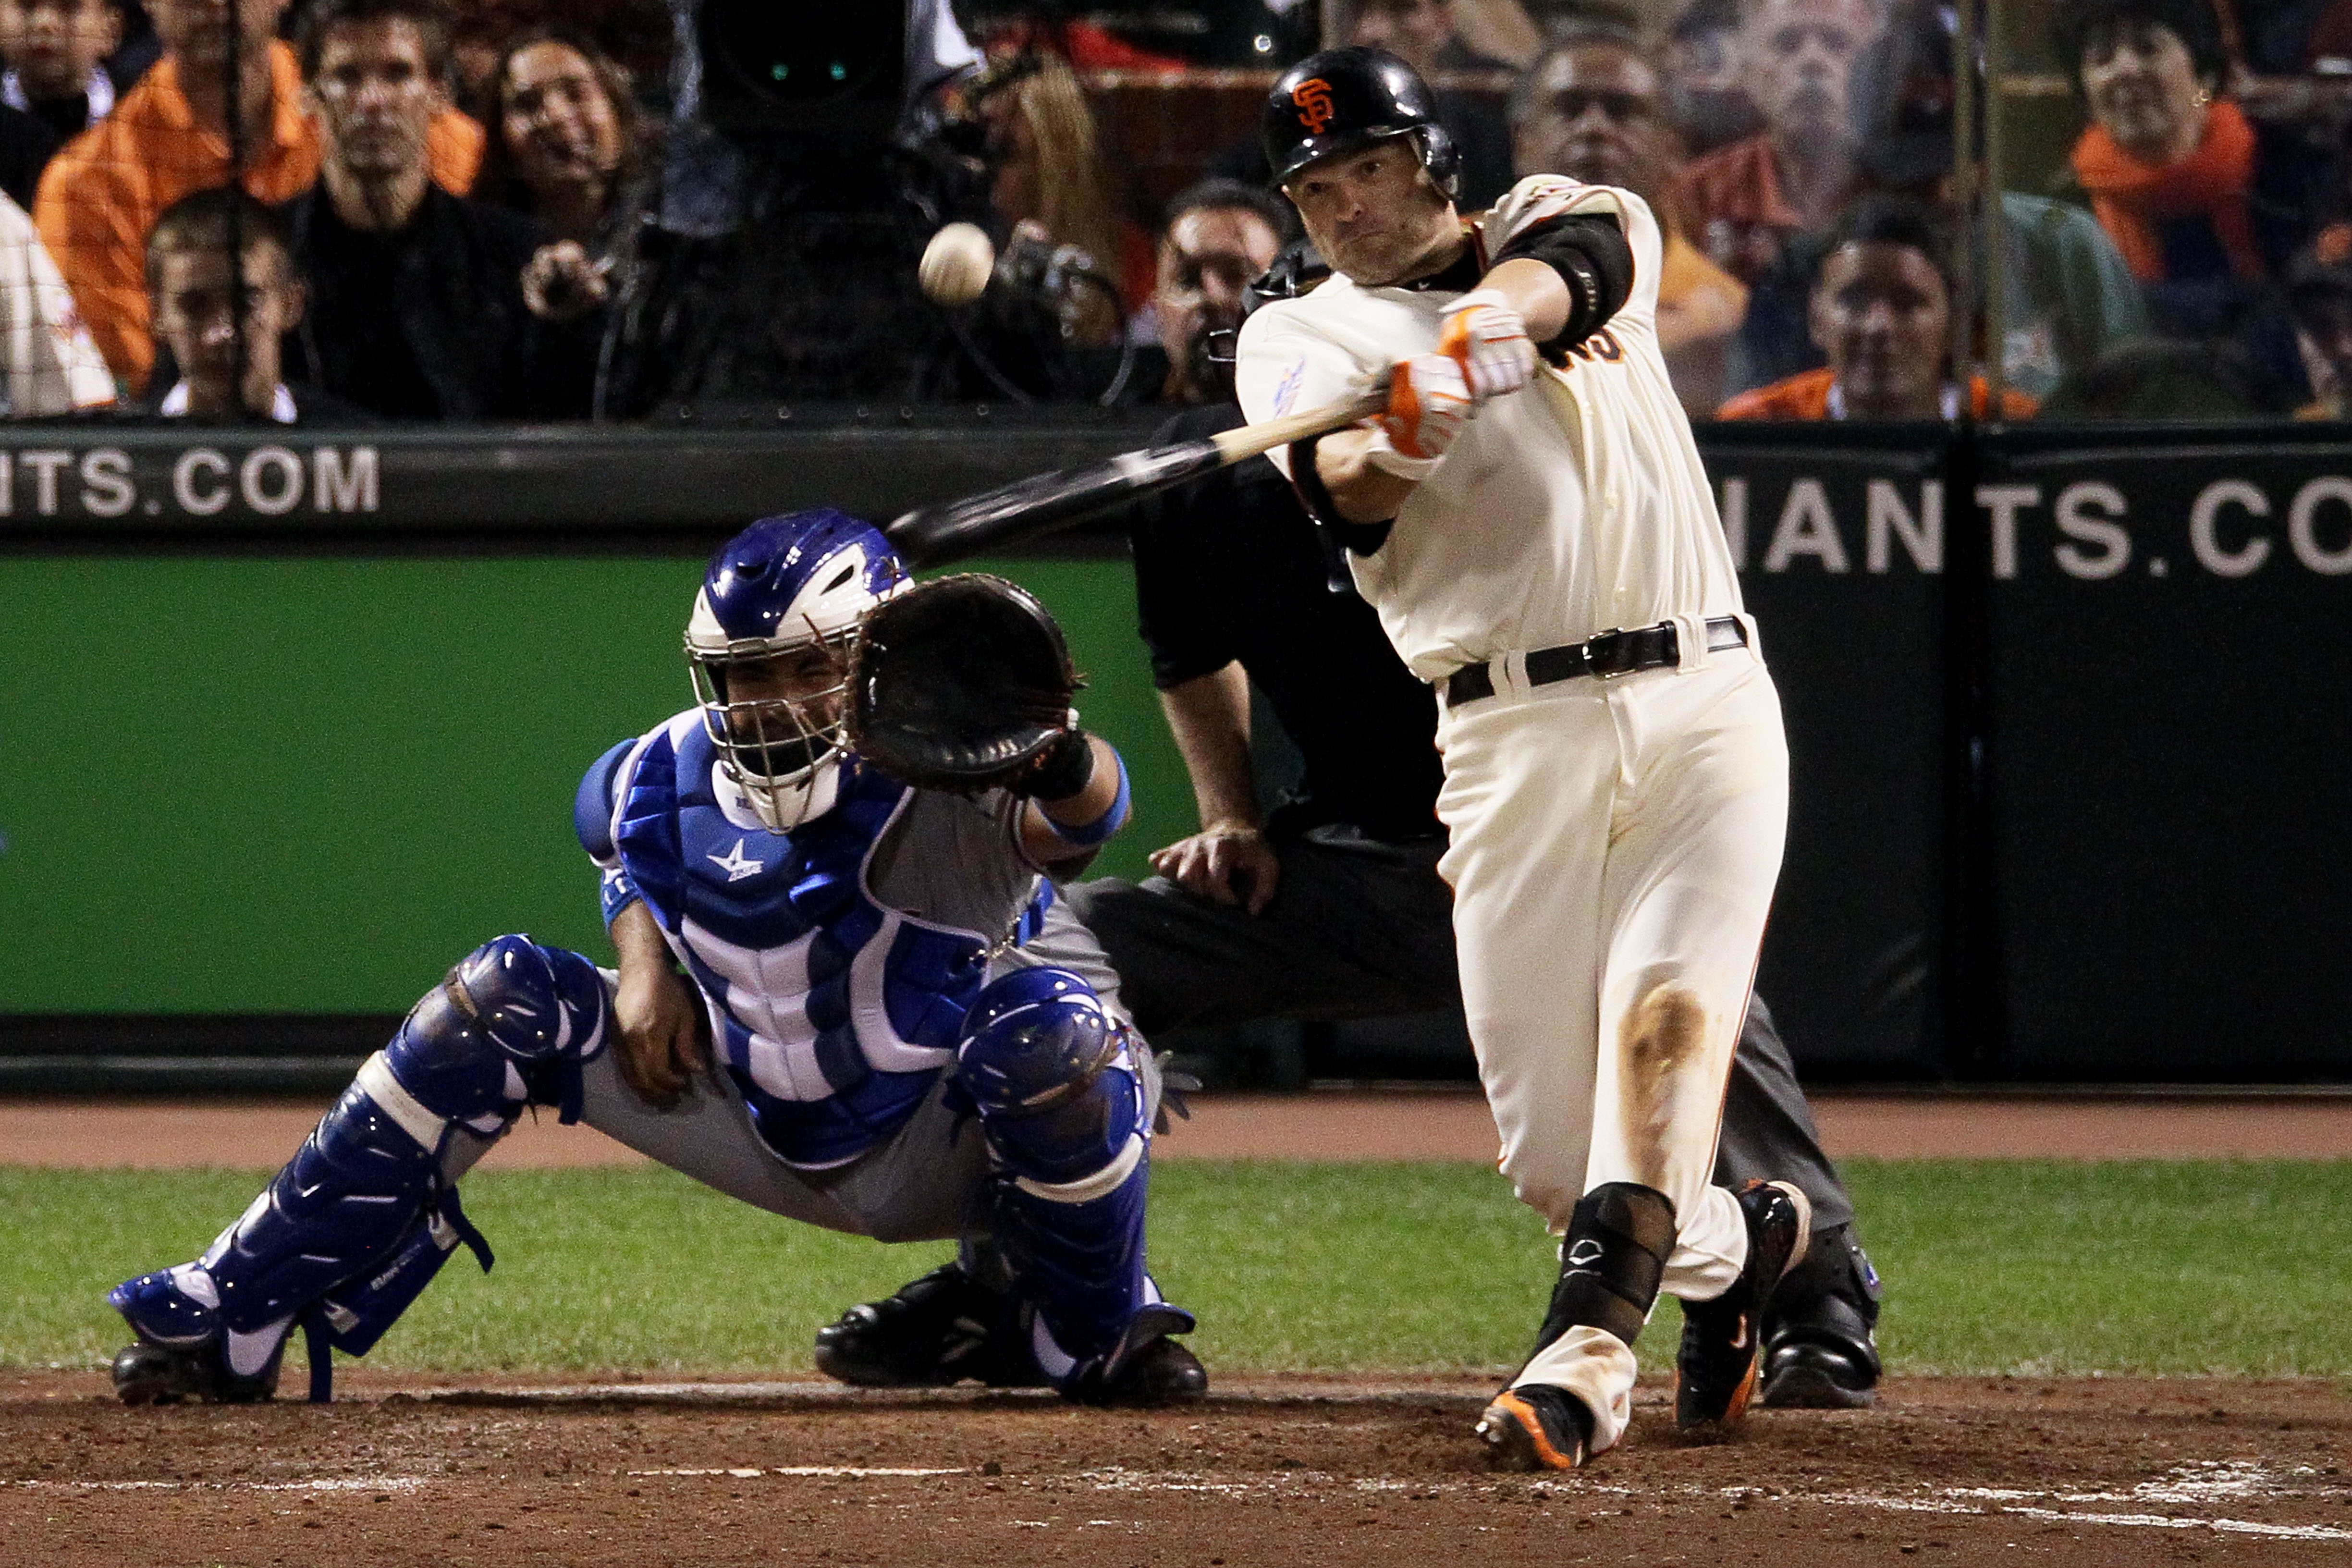 SAN FRANCISCO - OCTOBER 27:  Freddy Sanchez #21 of the San Francisco Giants hits an RBI double in the fifth inning against the Texas Rangers in Game One of the 2010 MLB World Series at AT&T Park on October 27, 2010 in San Francisco, California.  (Photo by